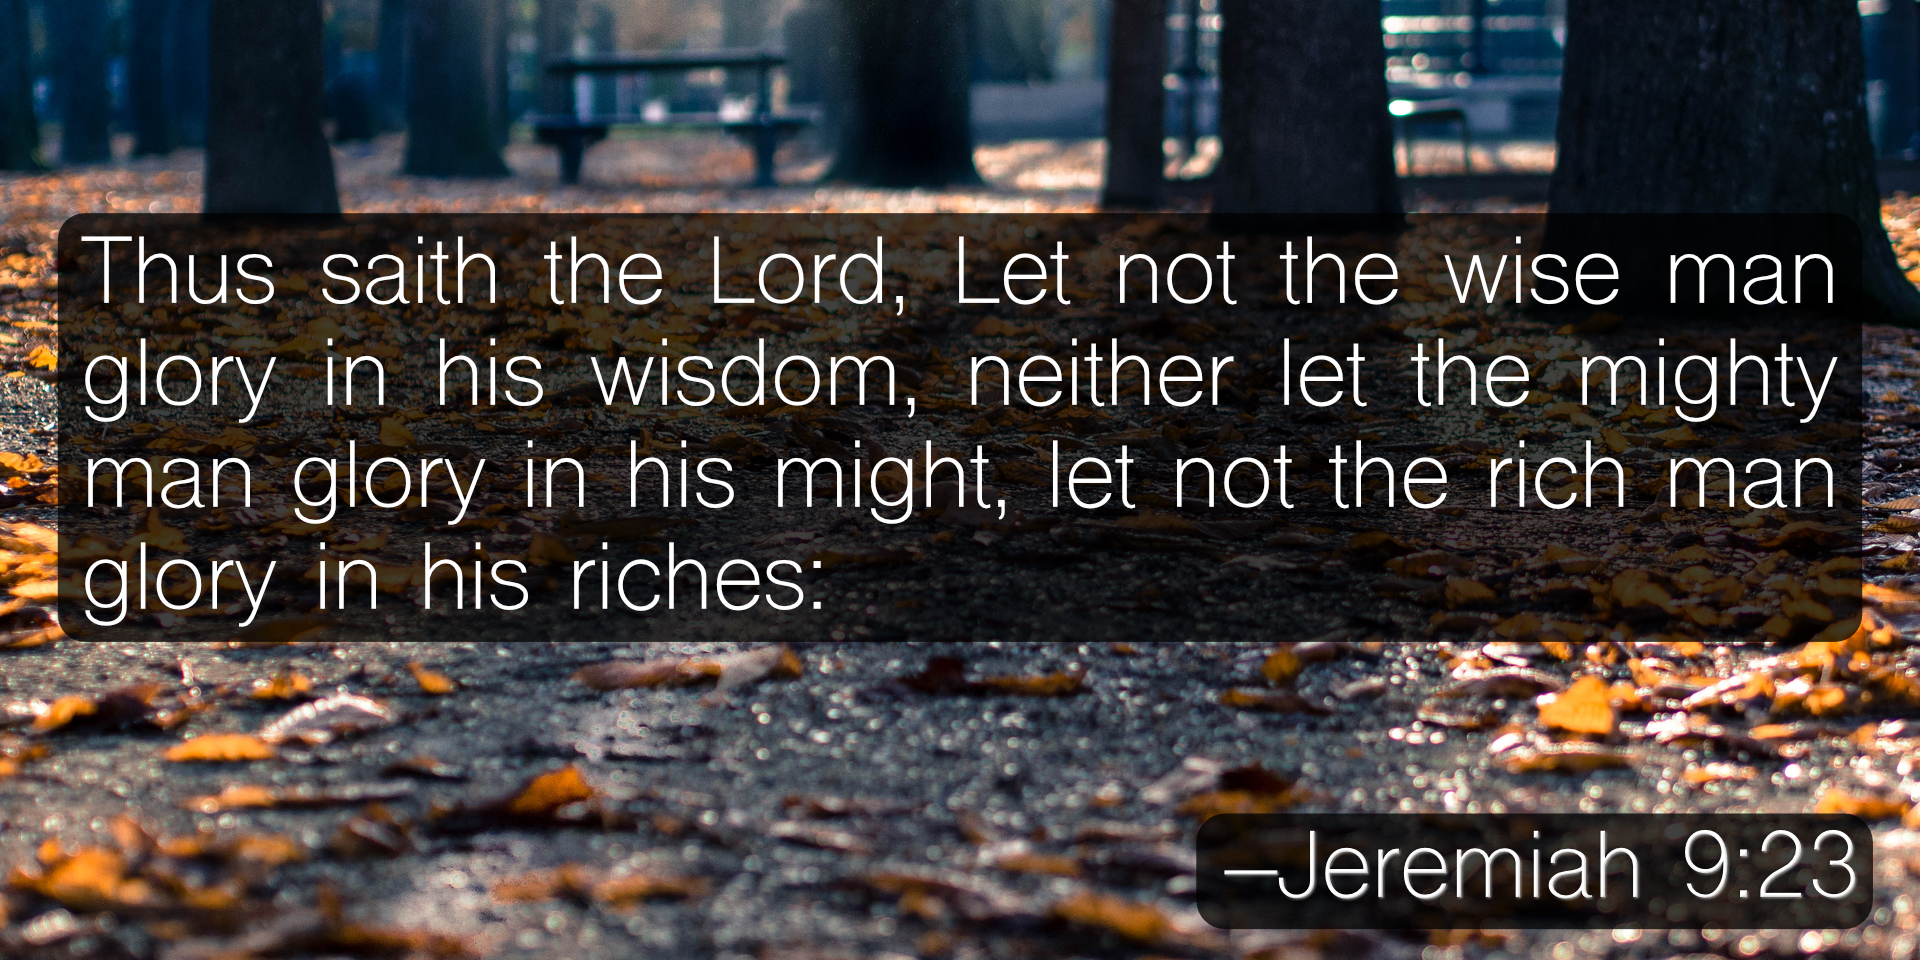 Thus saith the Lord, Let not the wise man glory in his wisdom, neither let the mighty man glory in his might, let not the rich man glory in his riches: –Jeremiah 9:23